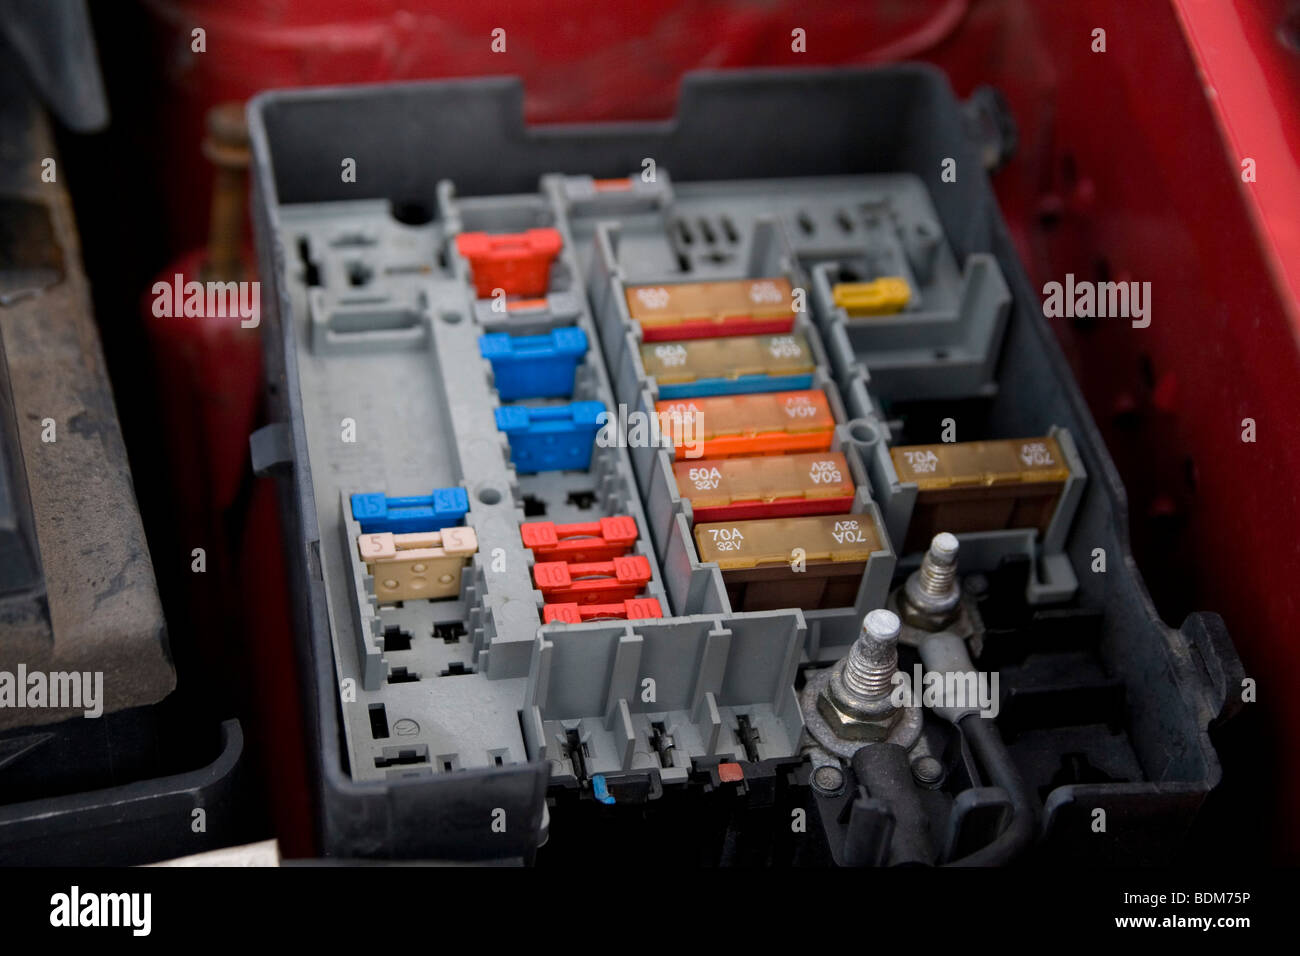 Citroen Nemo Van Fuse Box : citroen berlingo fuse box stock photo royalty free image ~ A.2002-acura-tl-radio.info Haus und Dekorationen